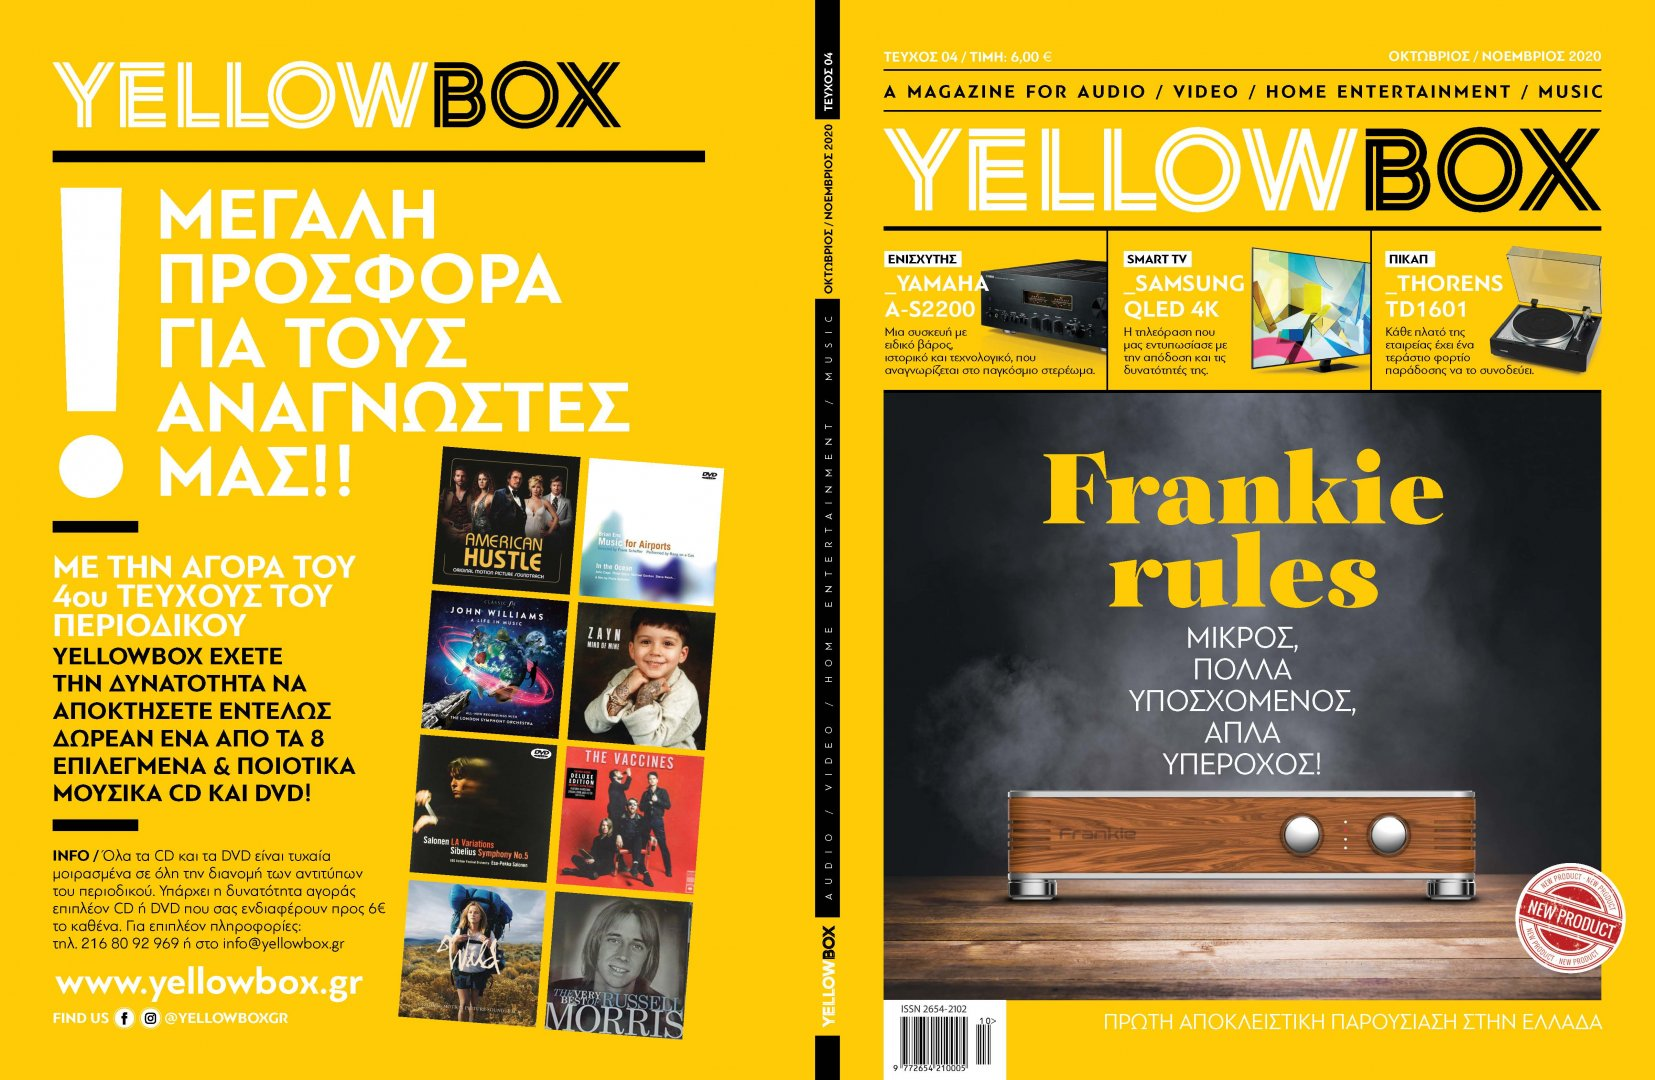 YELLOW_BOX_MAG_COVER_04_final_Page_1.jpg